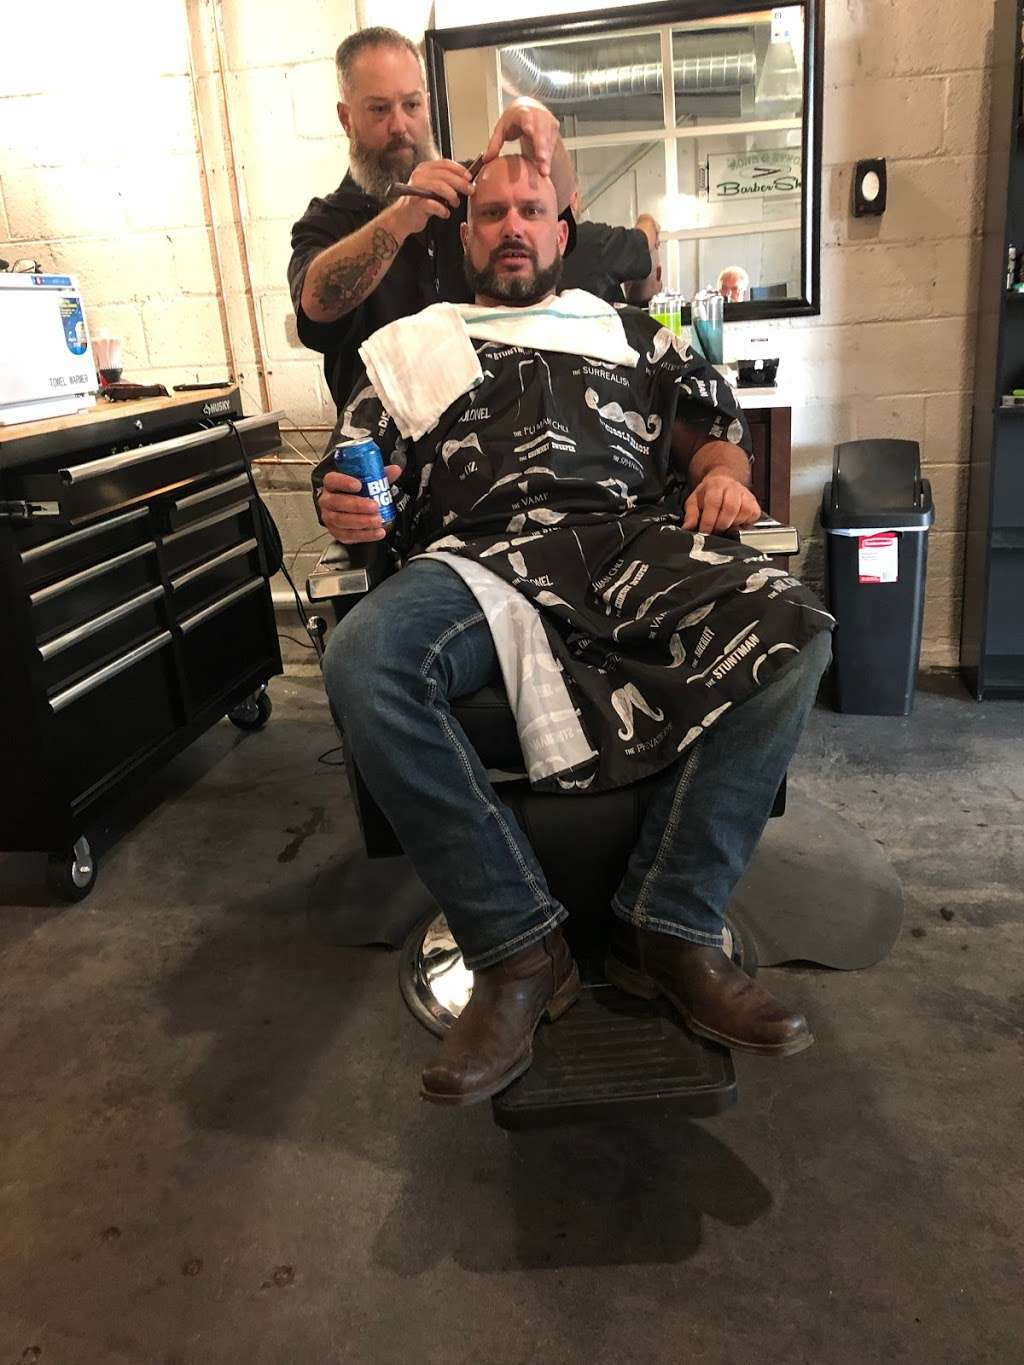 Hone and Strop Barbershop - hair care  | Photo 4 of 10 | Address: The Fuel House, 611 W 2nd St, Bonner Springs, KS 66012, USA | Phone: (785) 615-1023